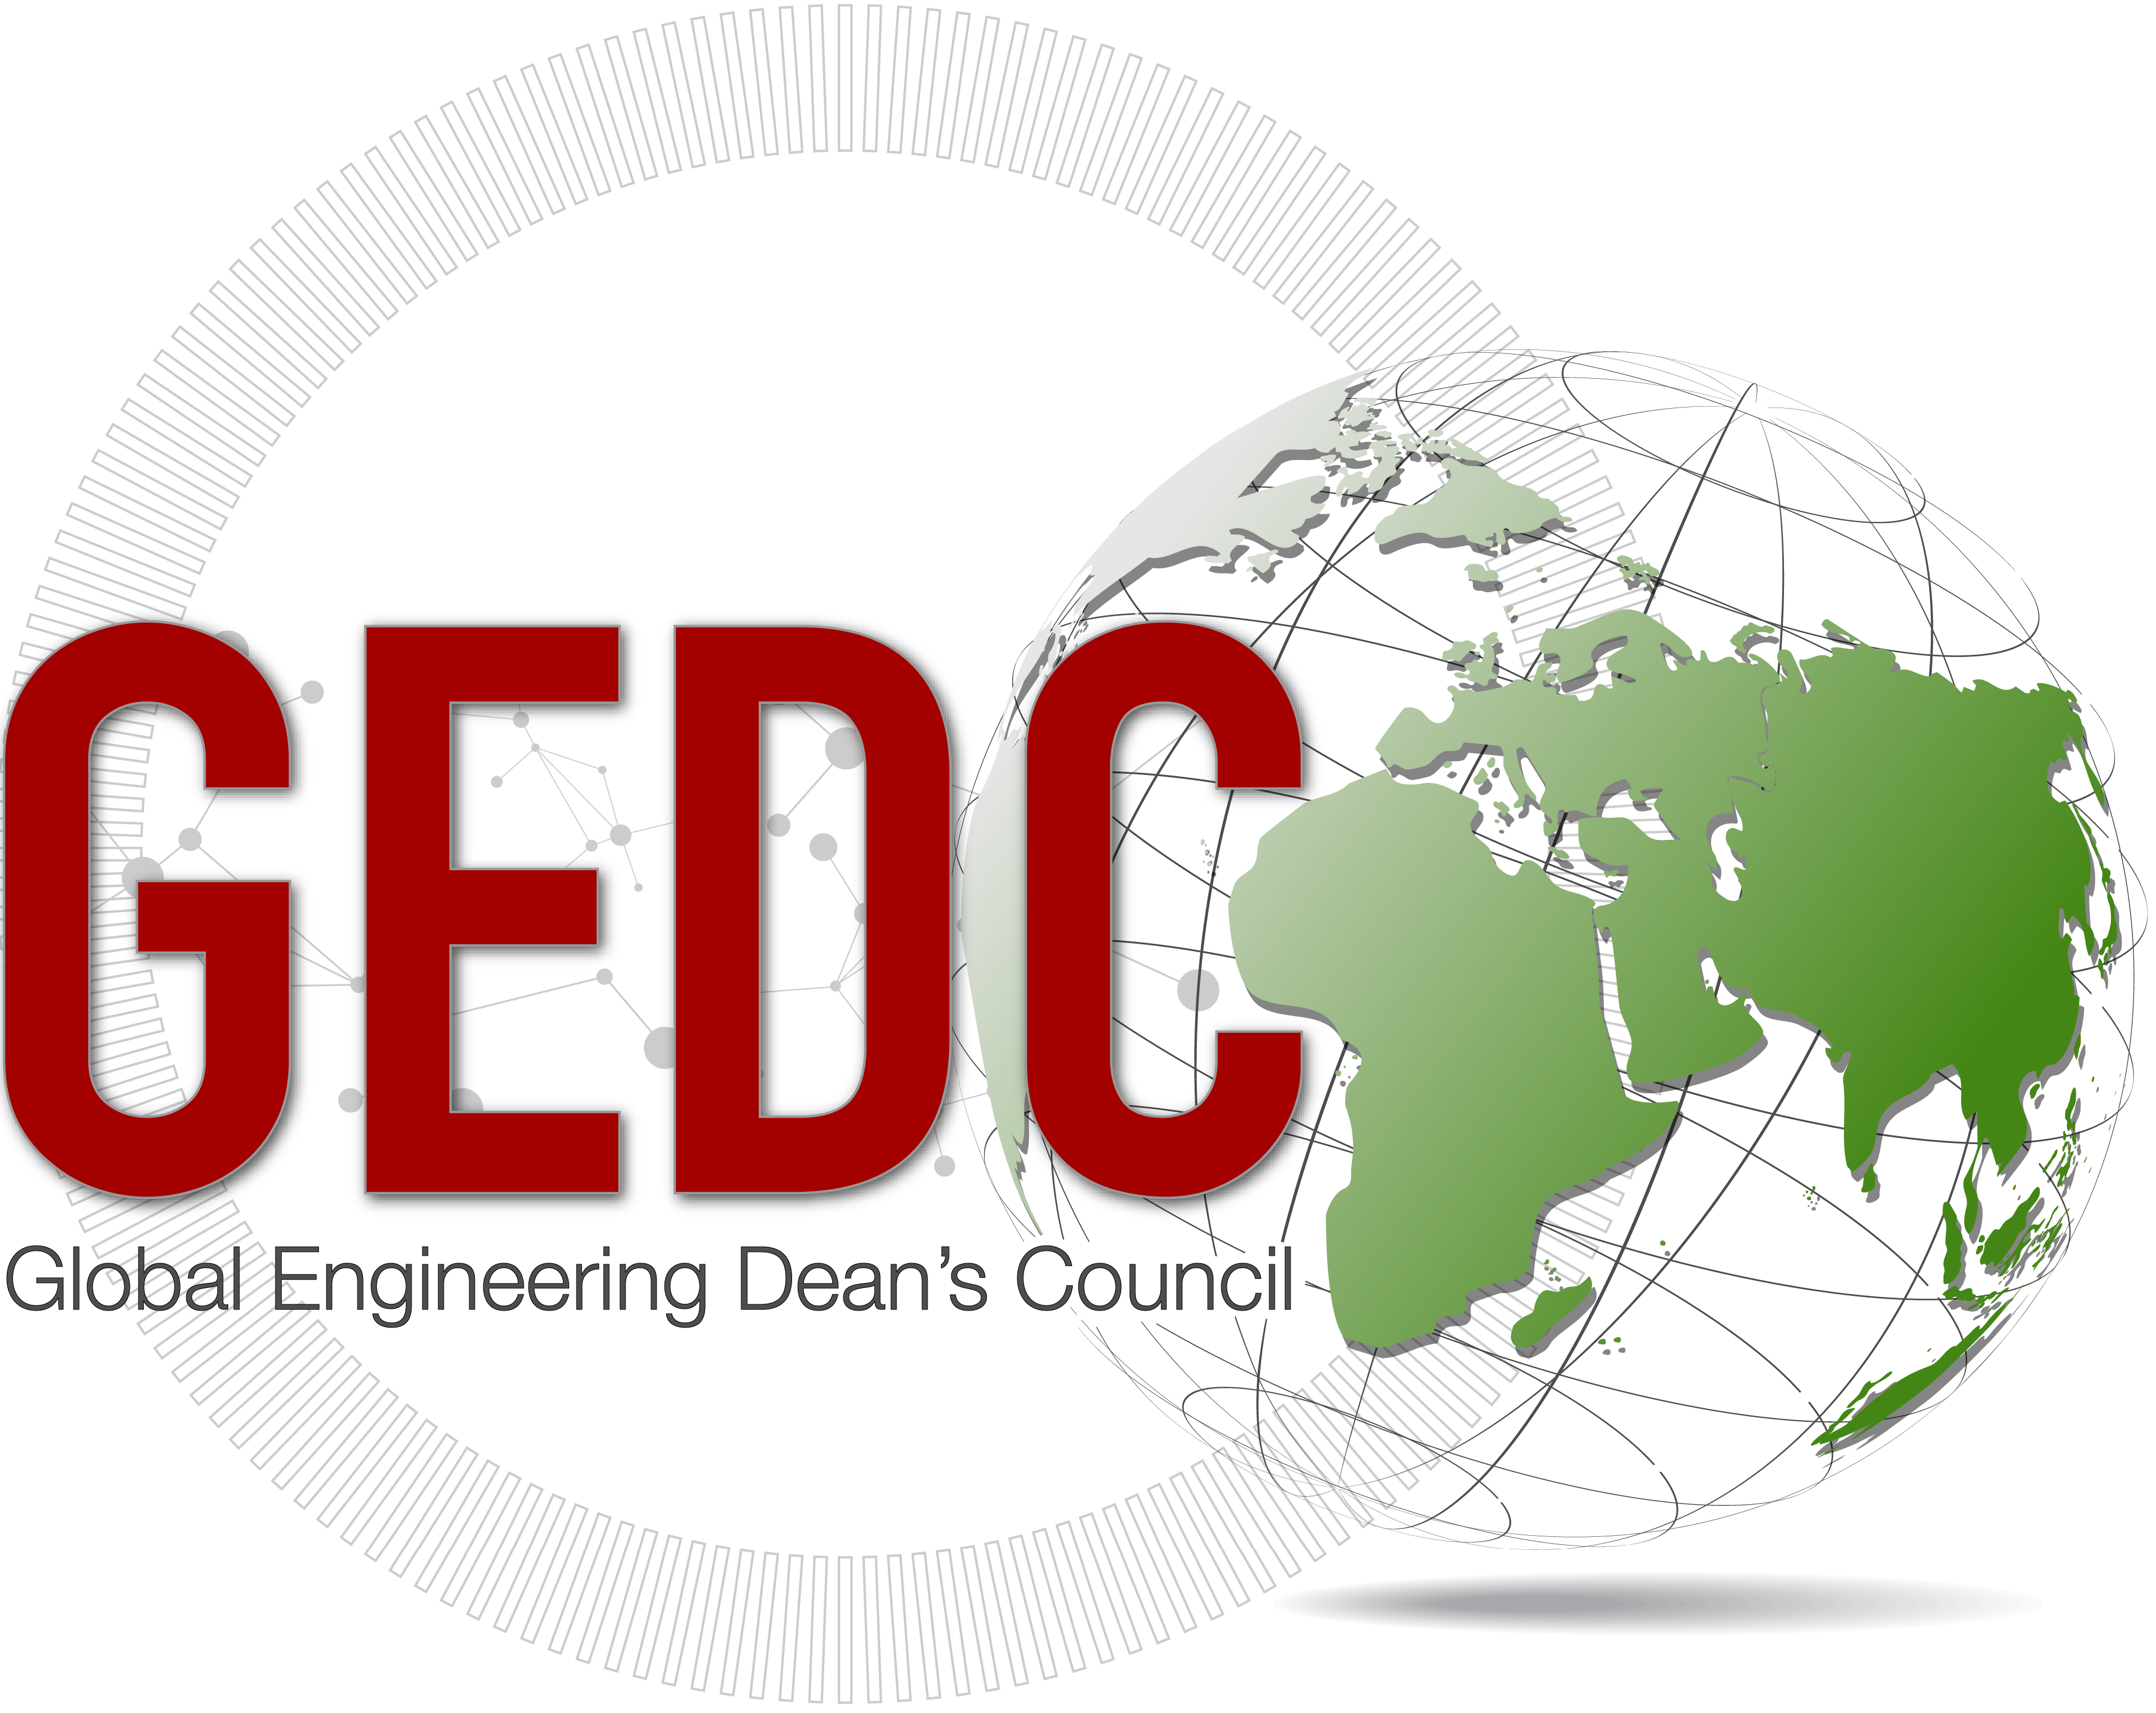 logo for Global Engineering Deans Council